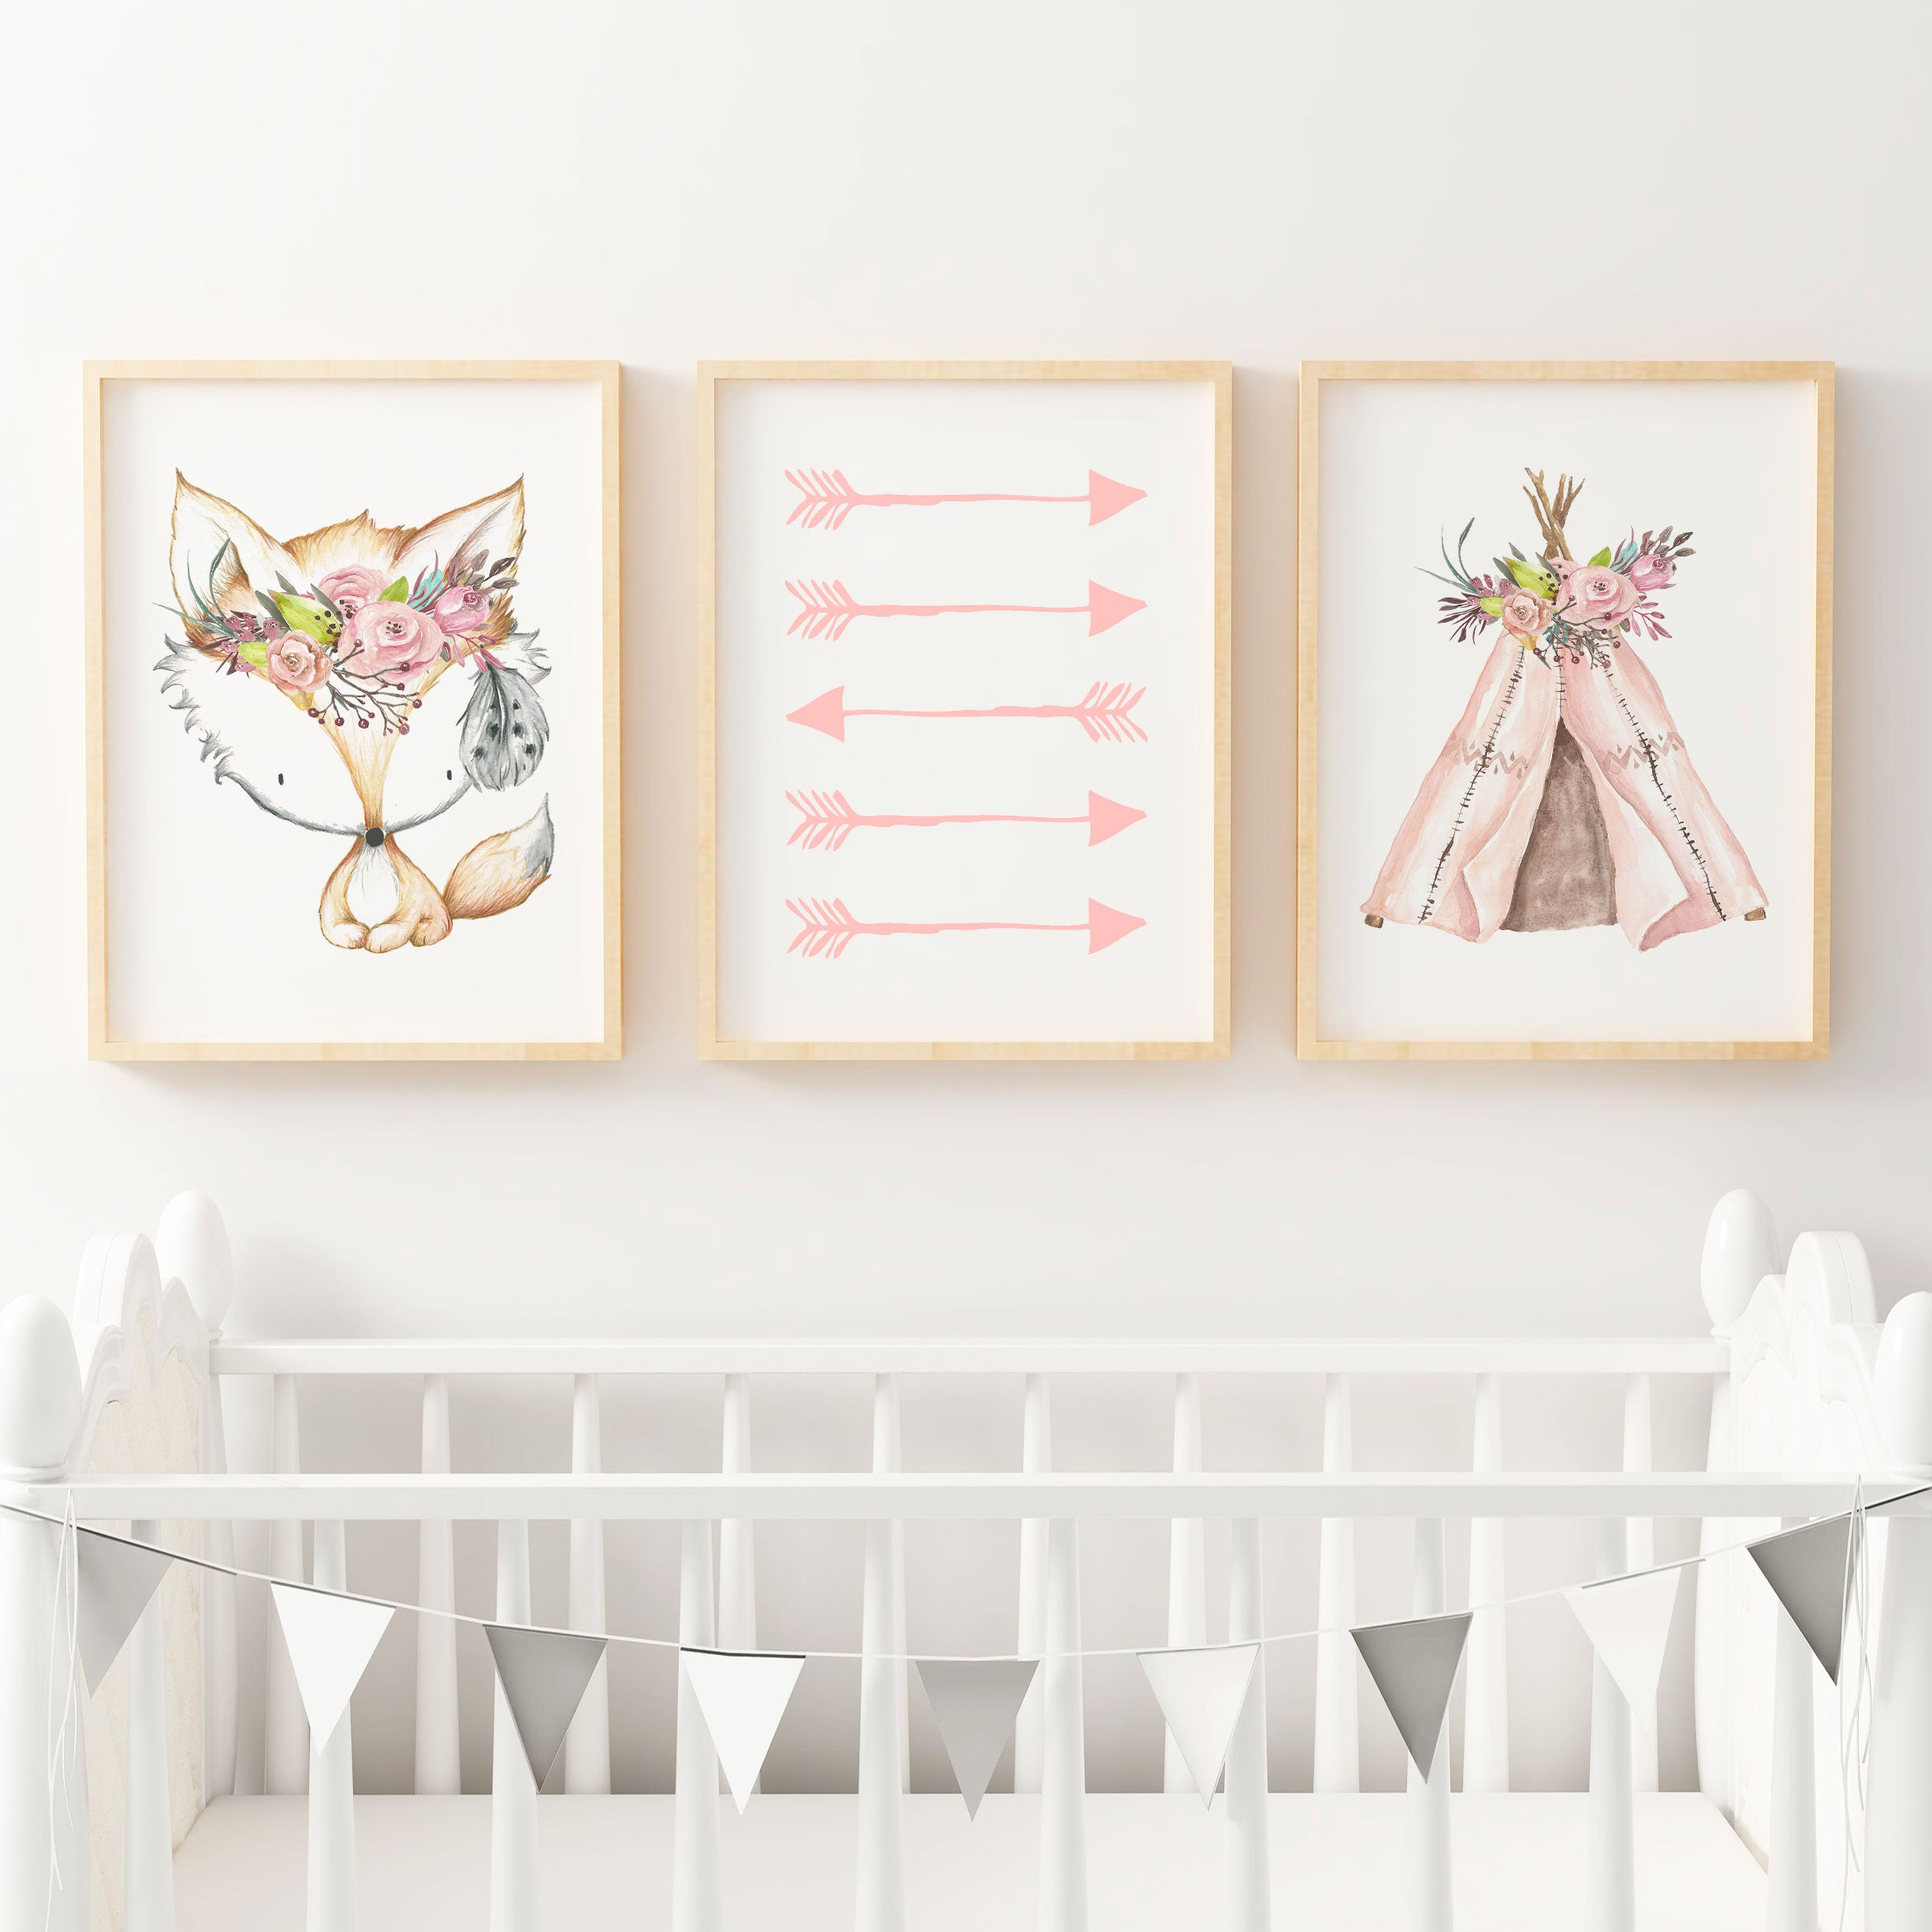 Boho Floral Woodland Nursery Or Bedroom Wall Art Print Set   Teepee ,  Arrows U0026 Fox